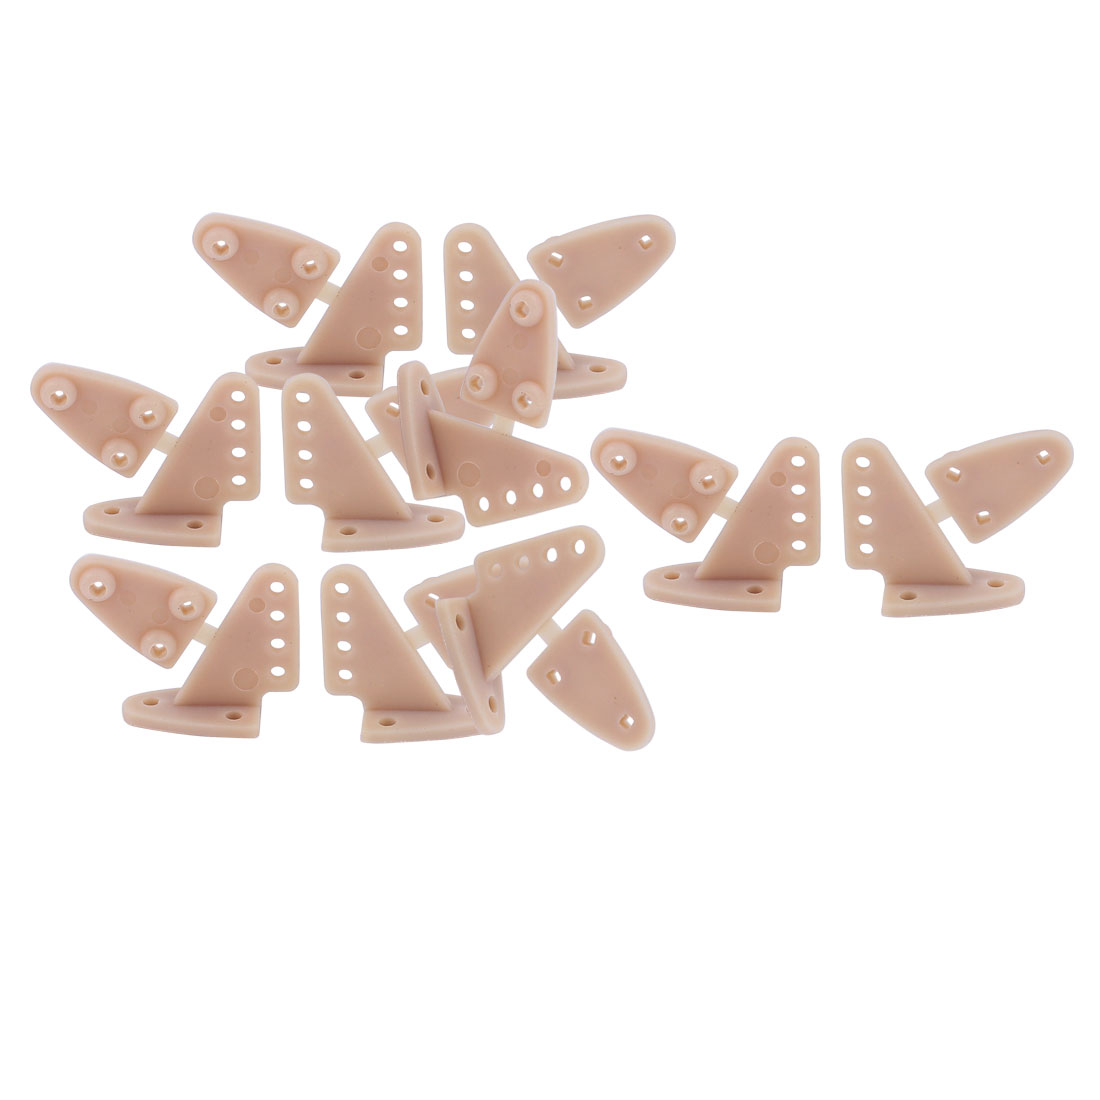 10pcs RC Remote Control Airplane Spare Parts 16.5x20.0mm Triangle Rudder Angle Grey